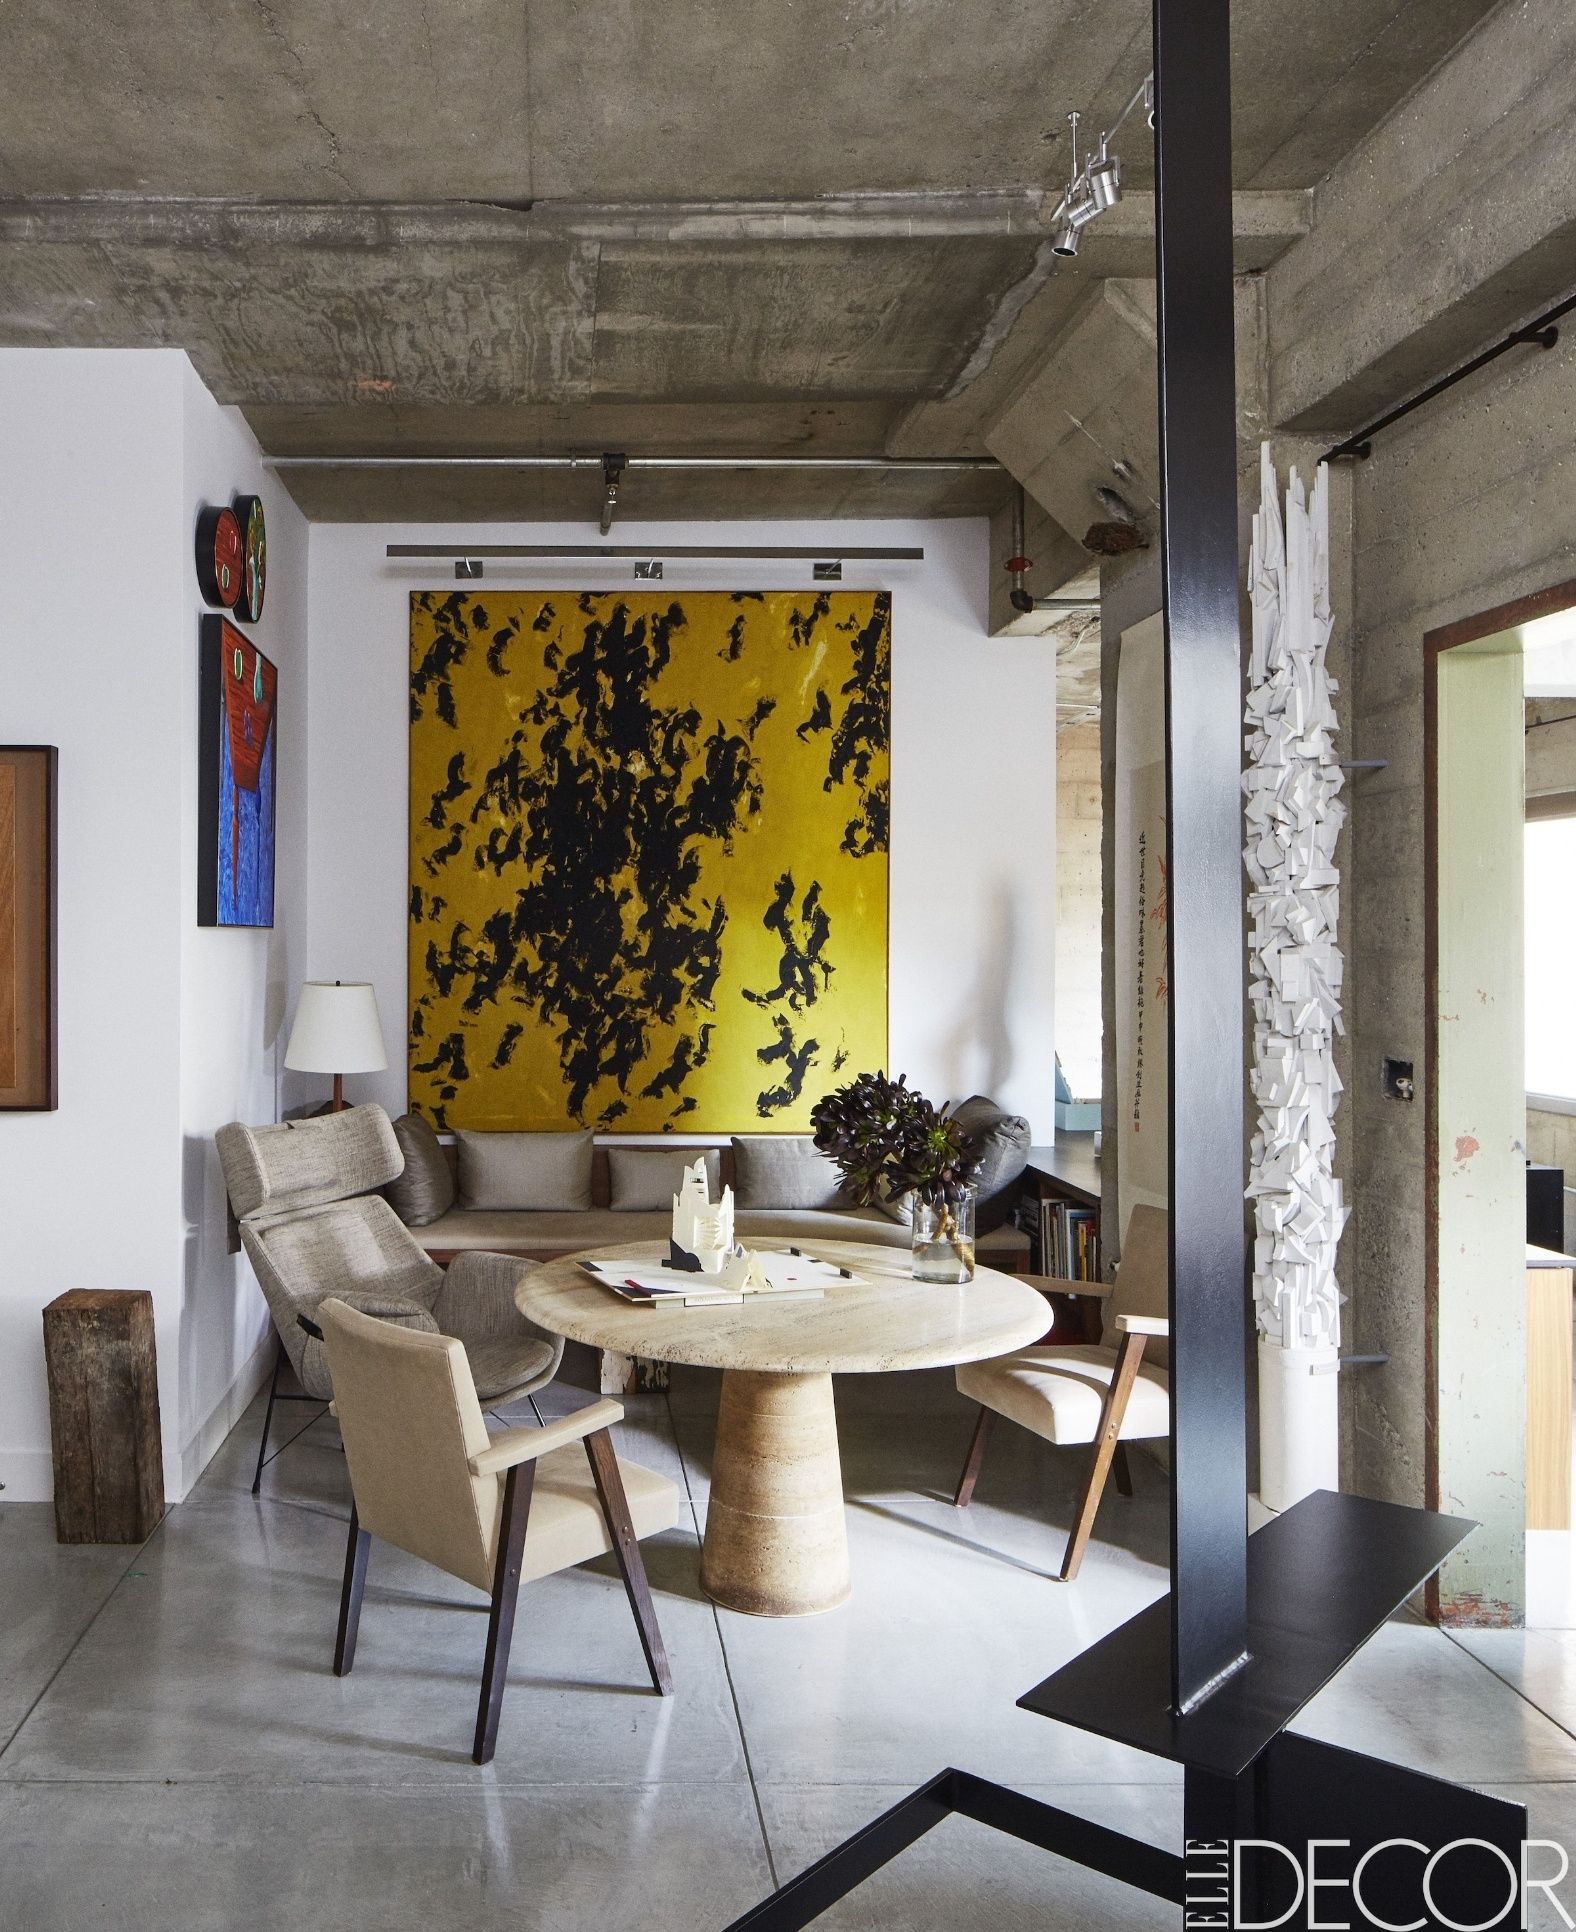 Tour an artsy home designed by Stephan